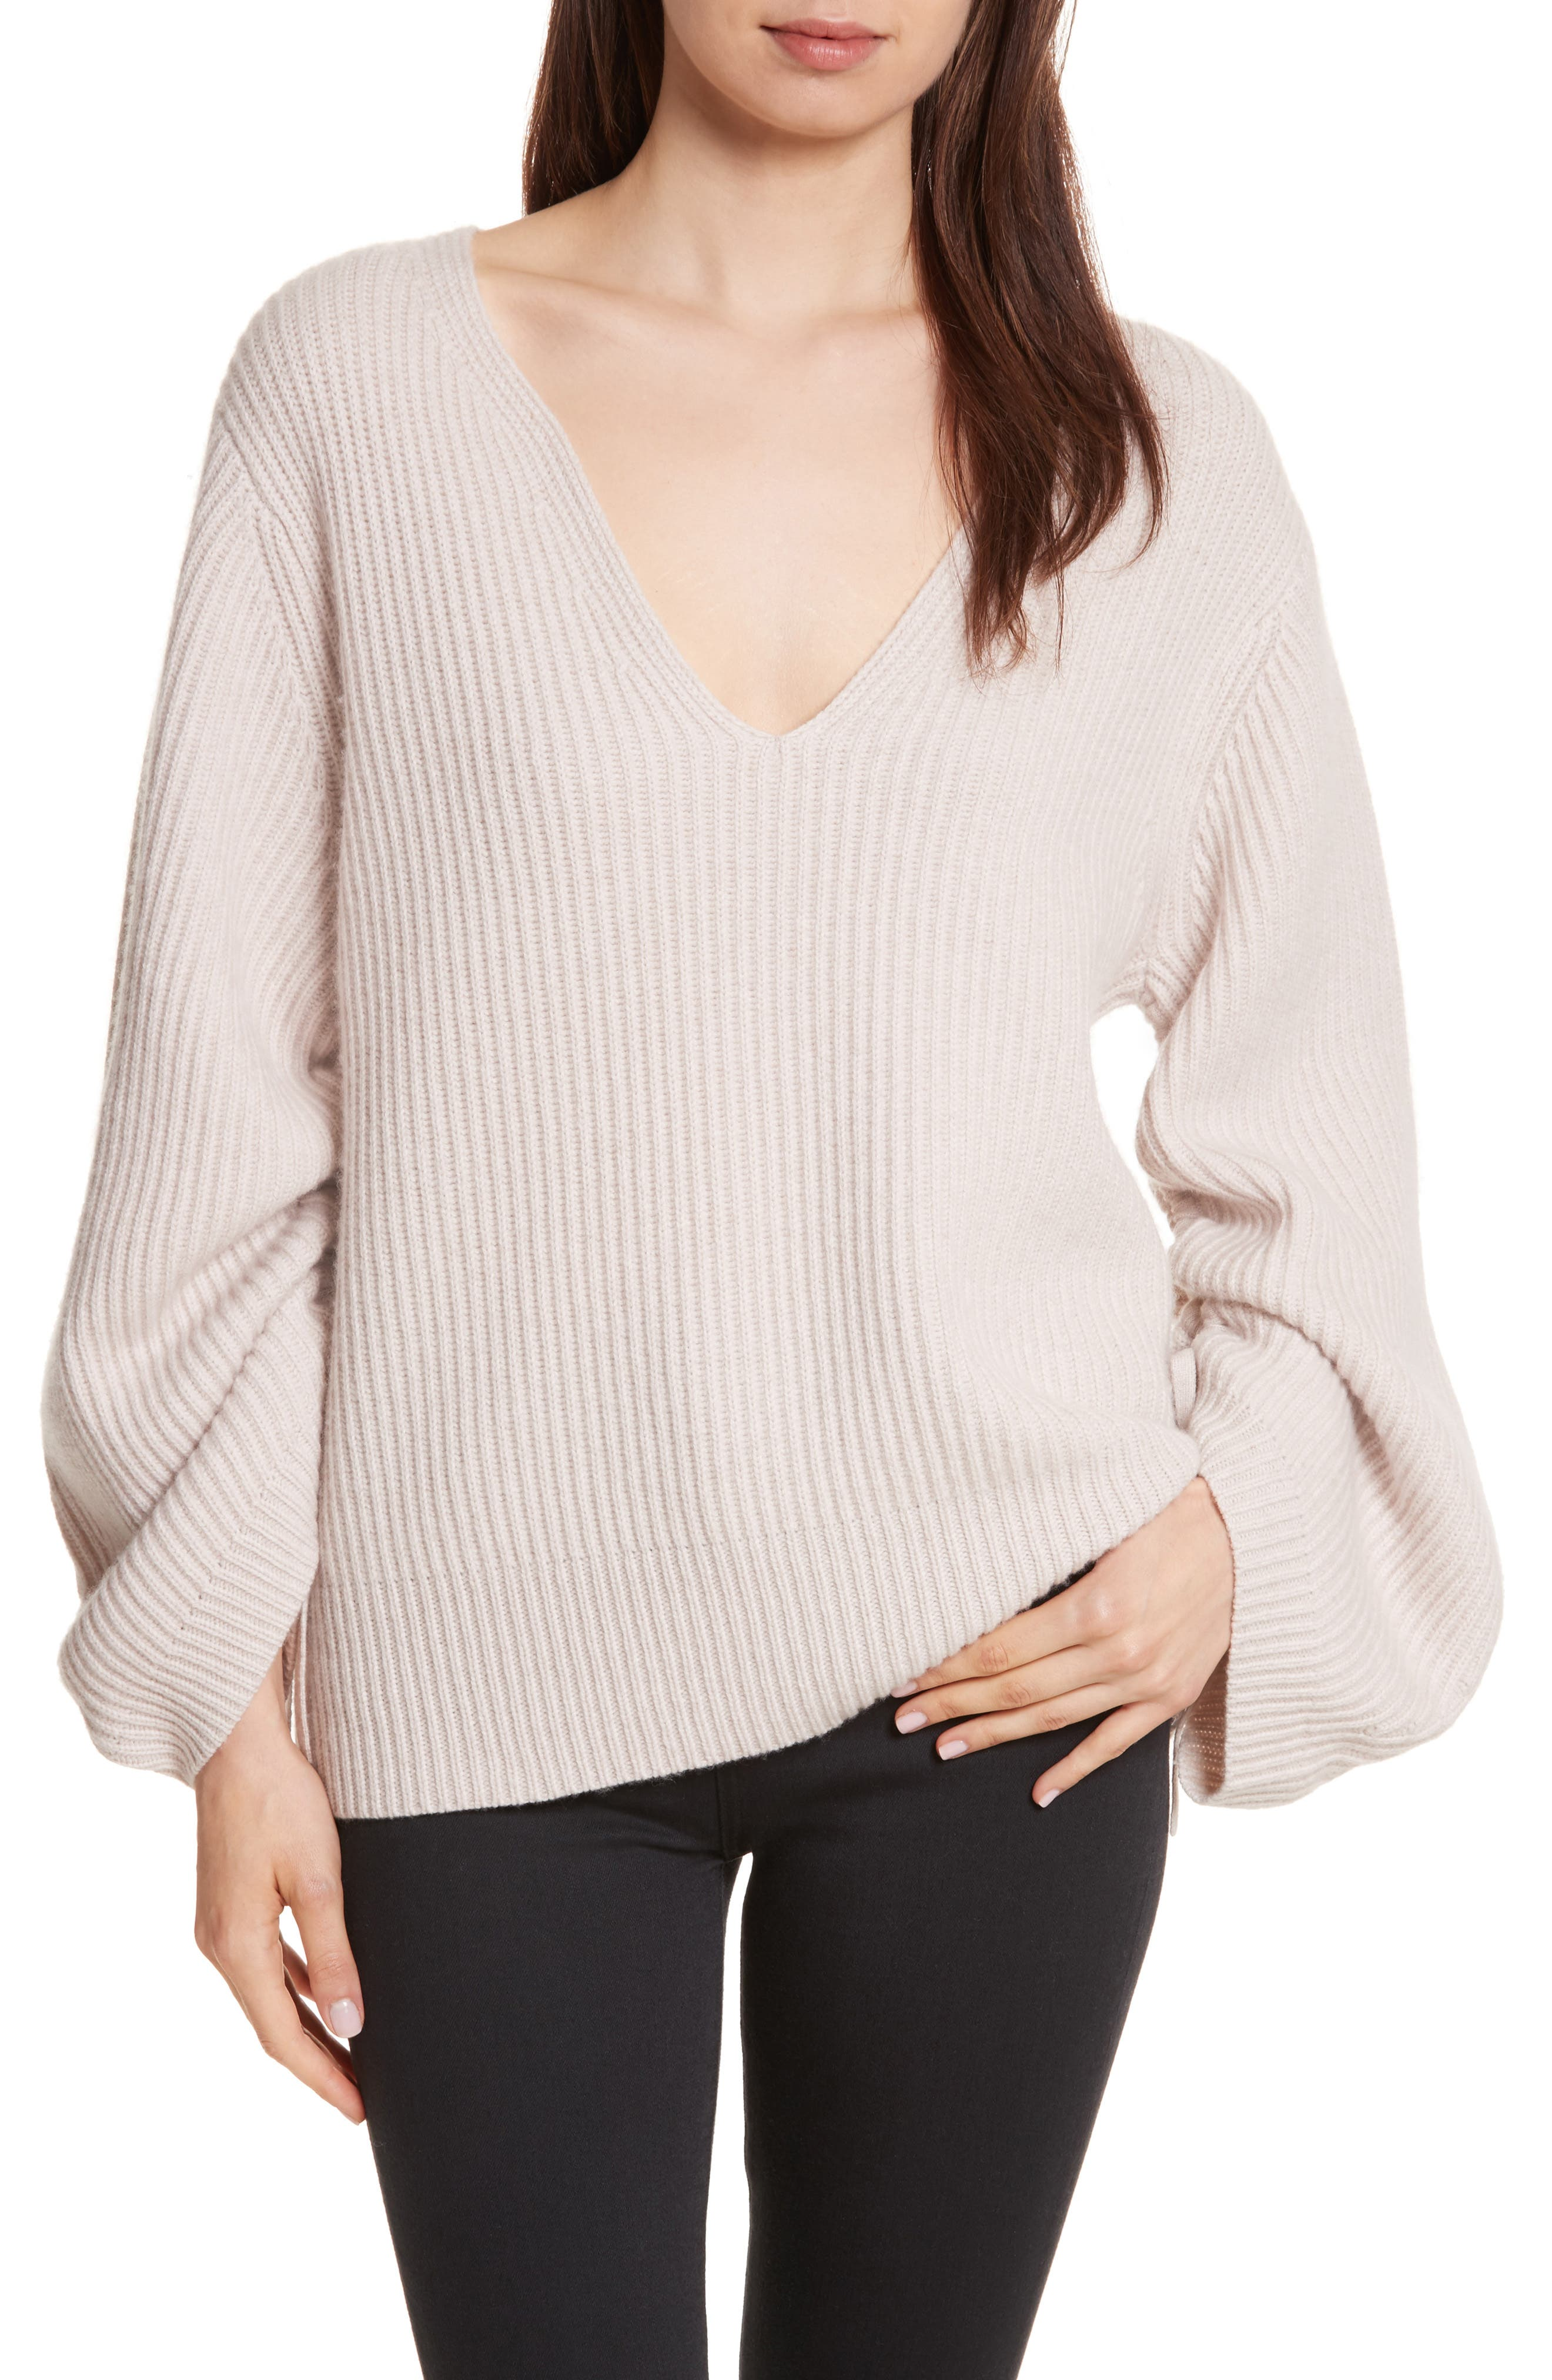 Anneka Wool & Cashmere Puff Sleeve Sweater,                         Main,                         color, 270